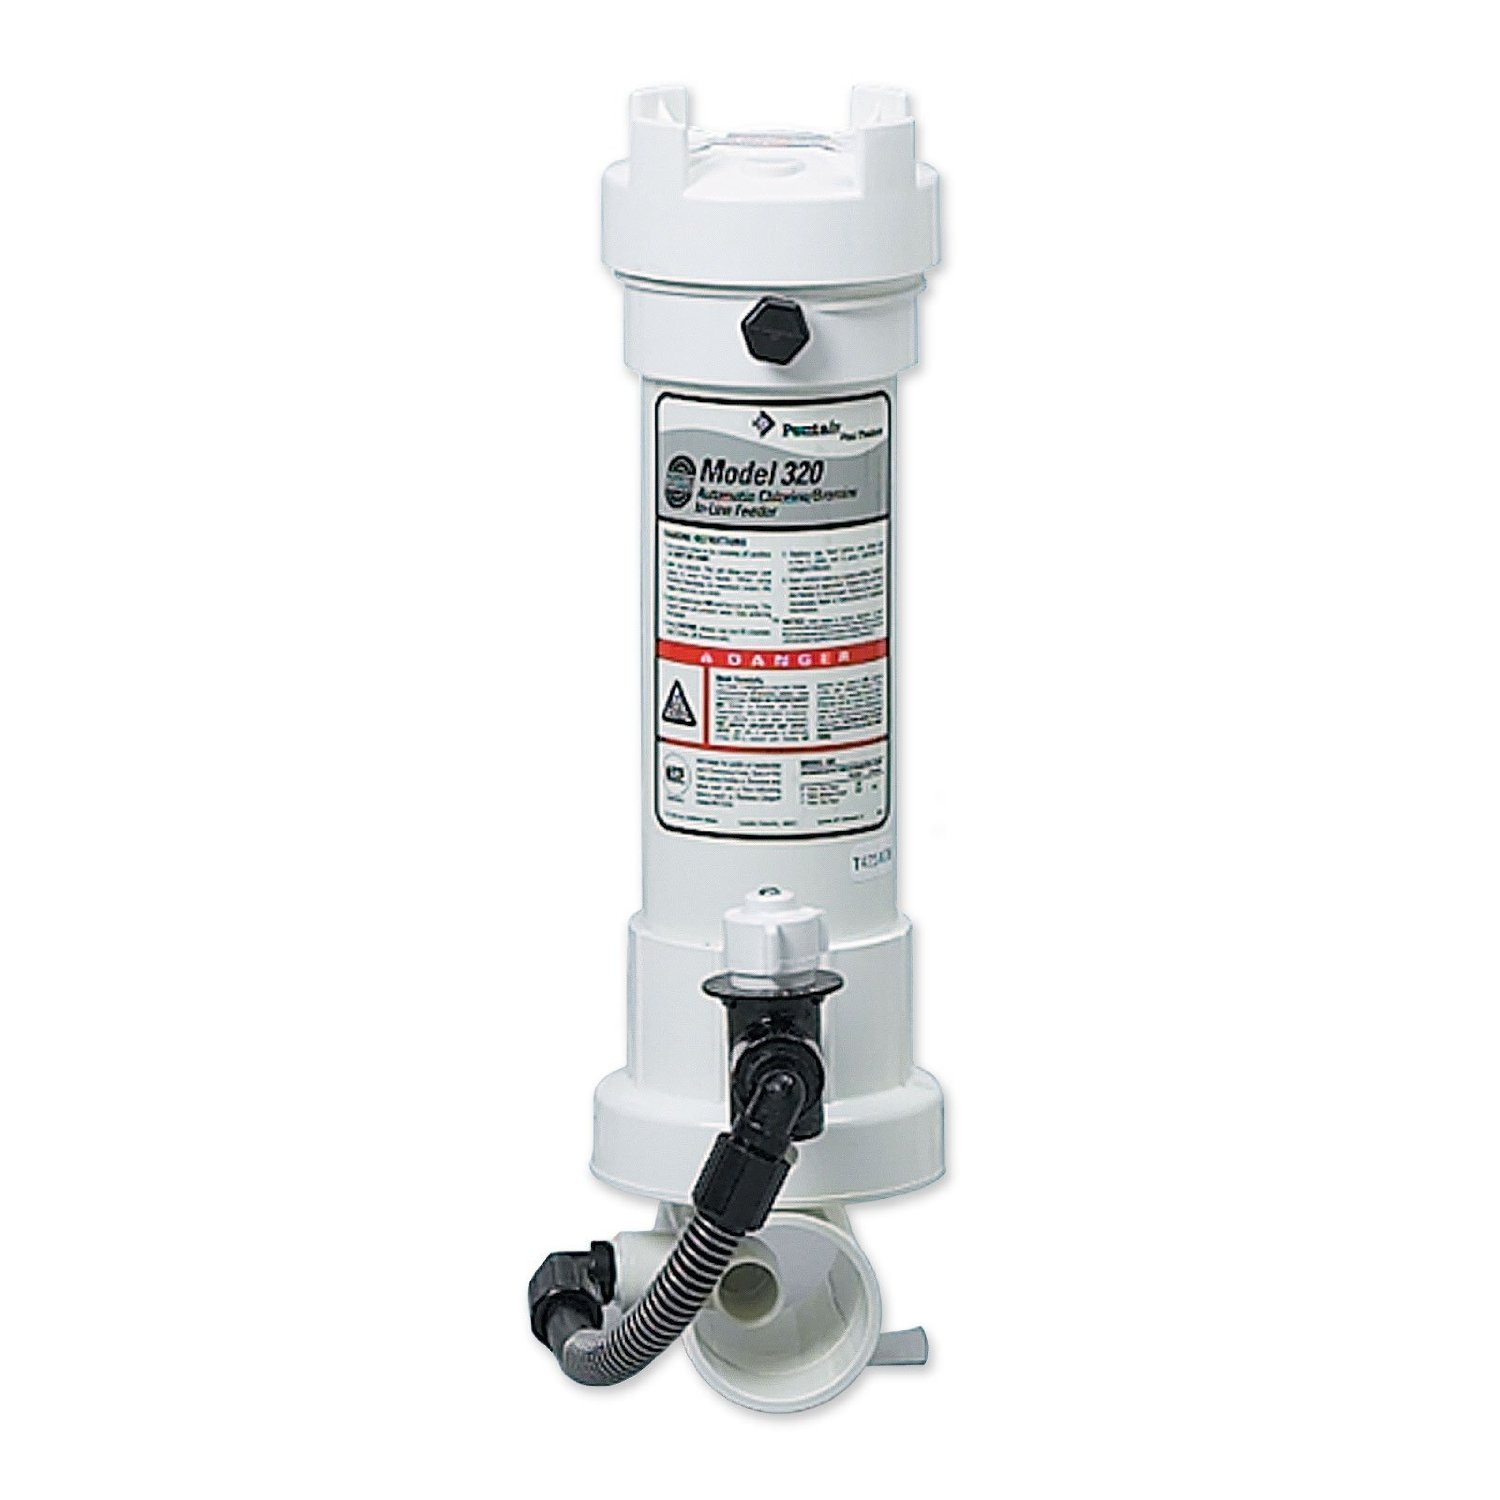 Pentair Rainbow 320 In-Line Automatic Pool Chemical Feeder - R171096